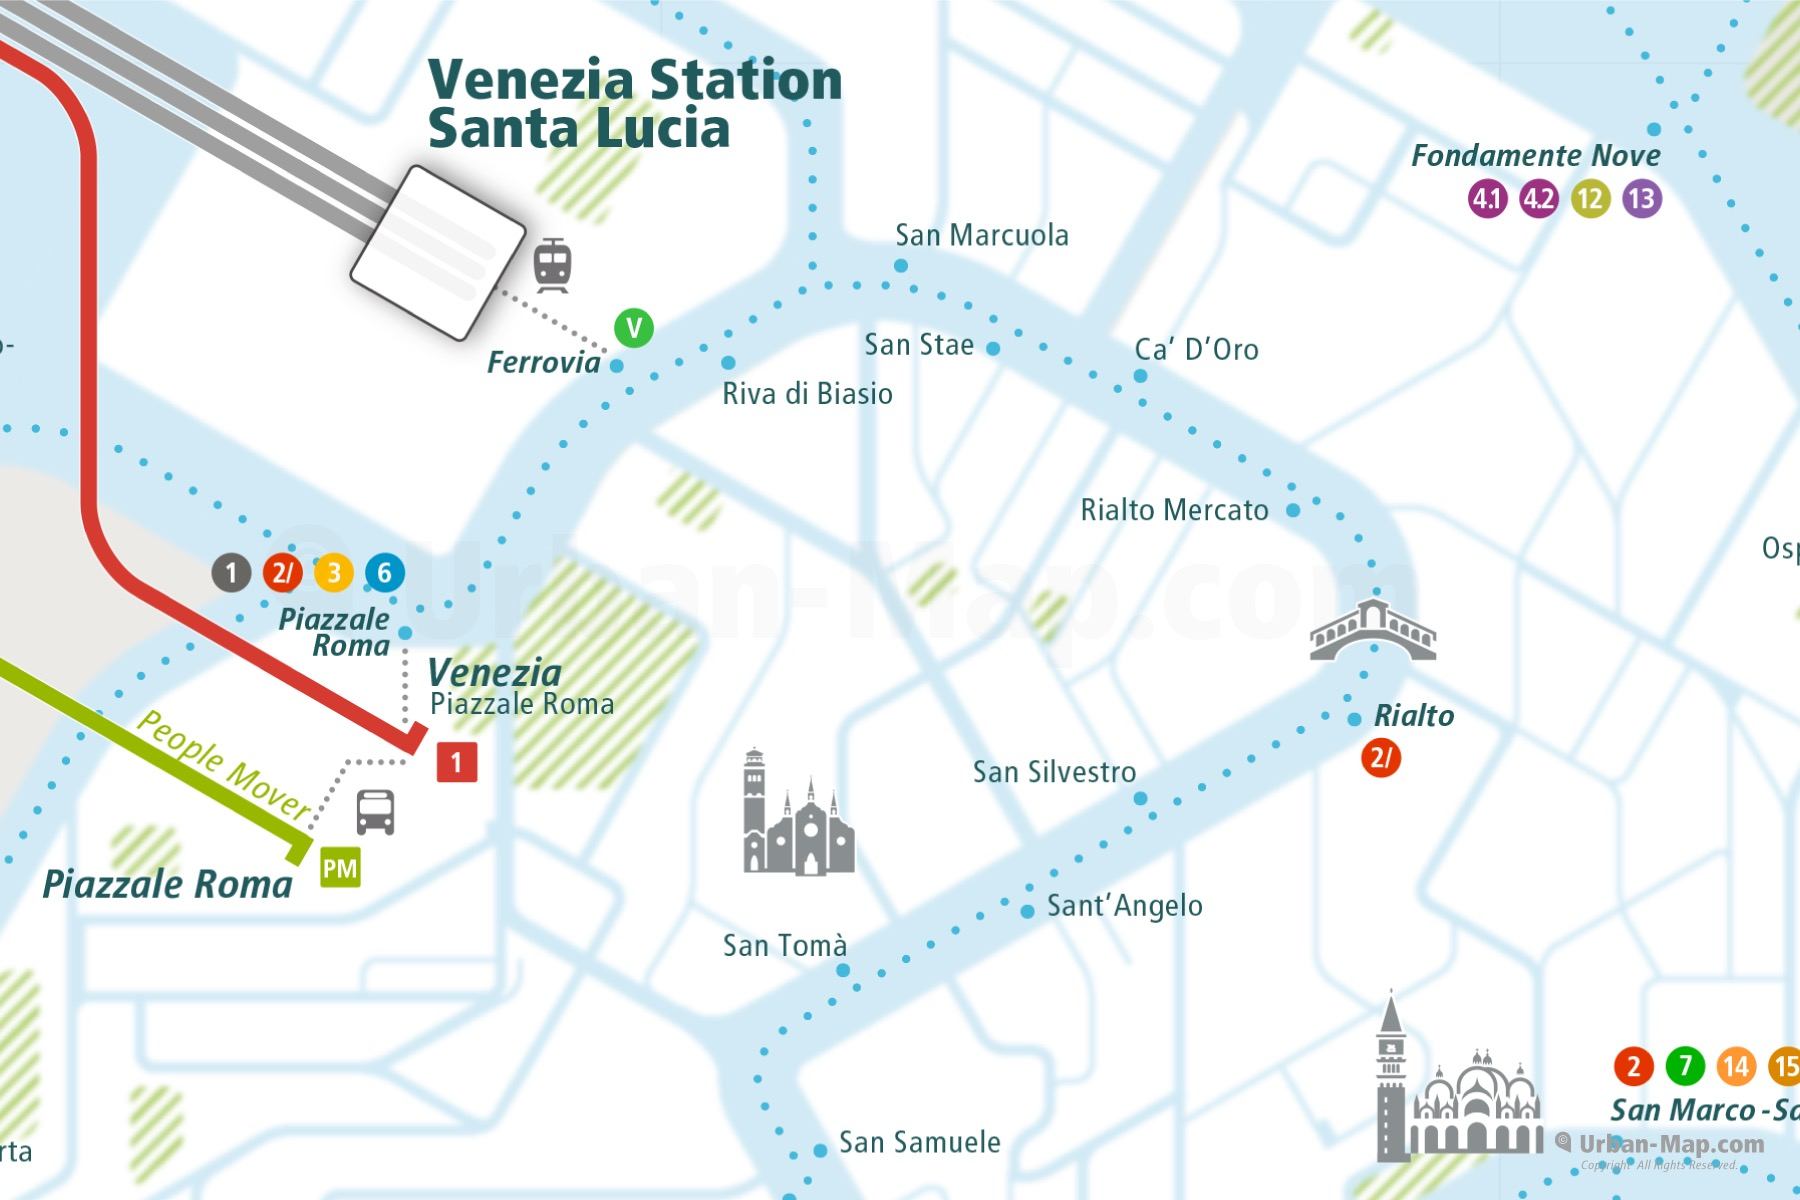 Map Of Italy Train Stations.Venice Rail Map A Smart City Guide Map Even Offline